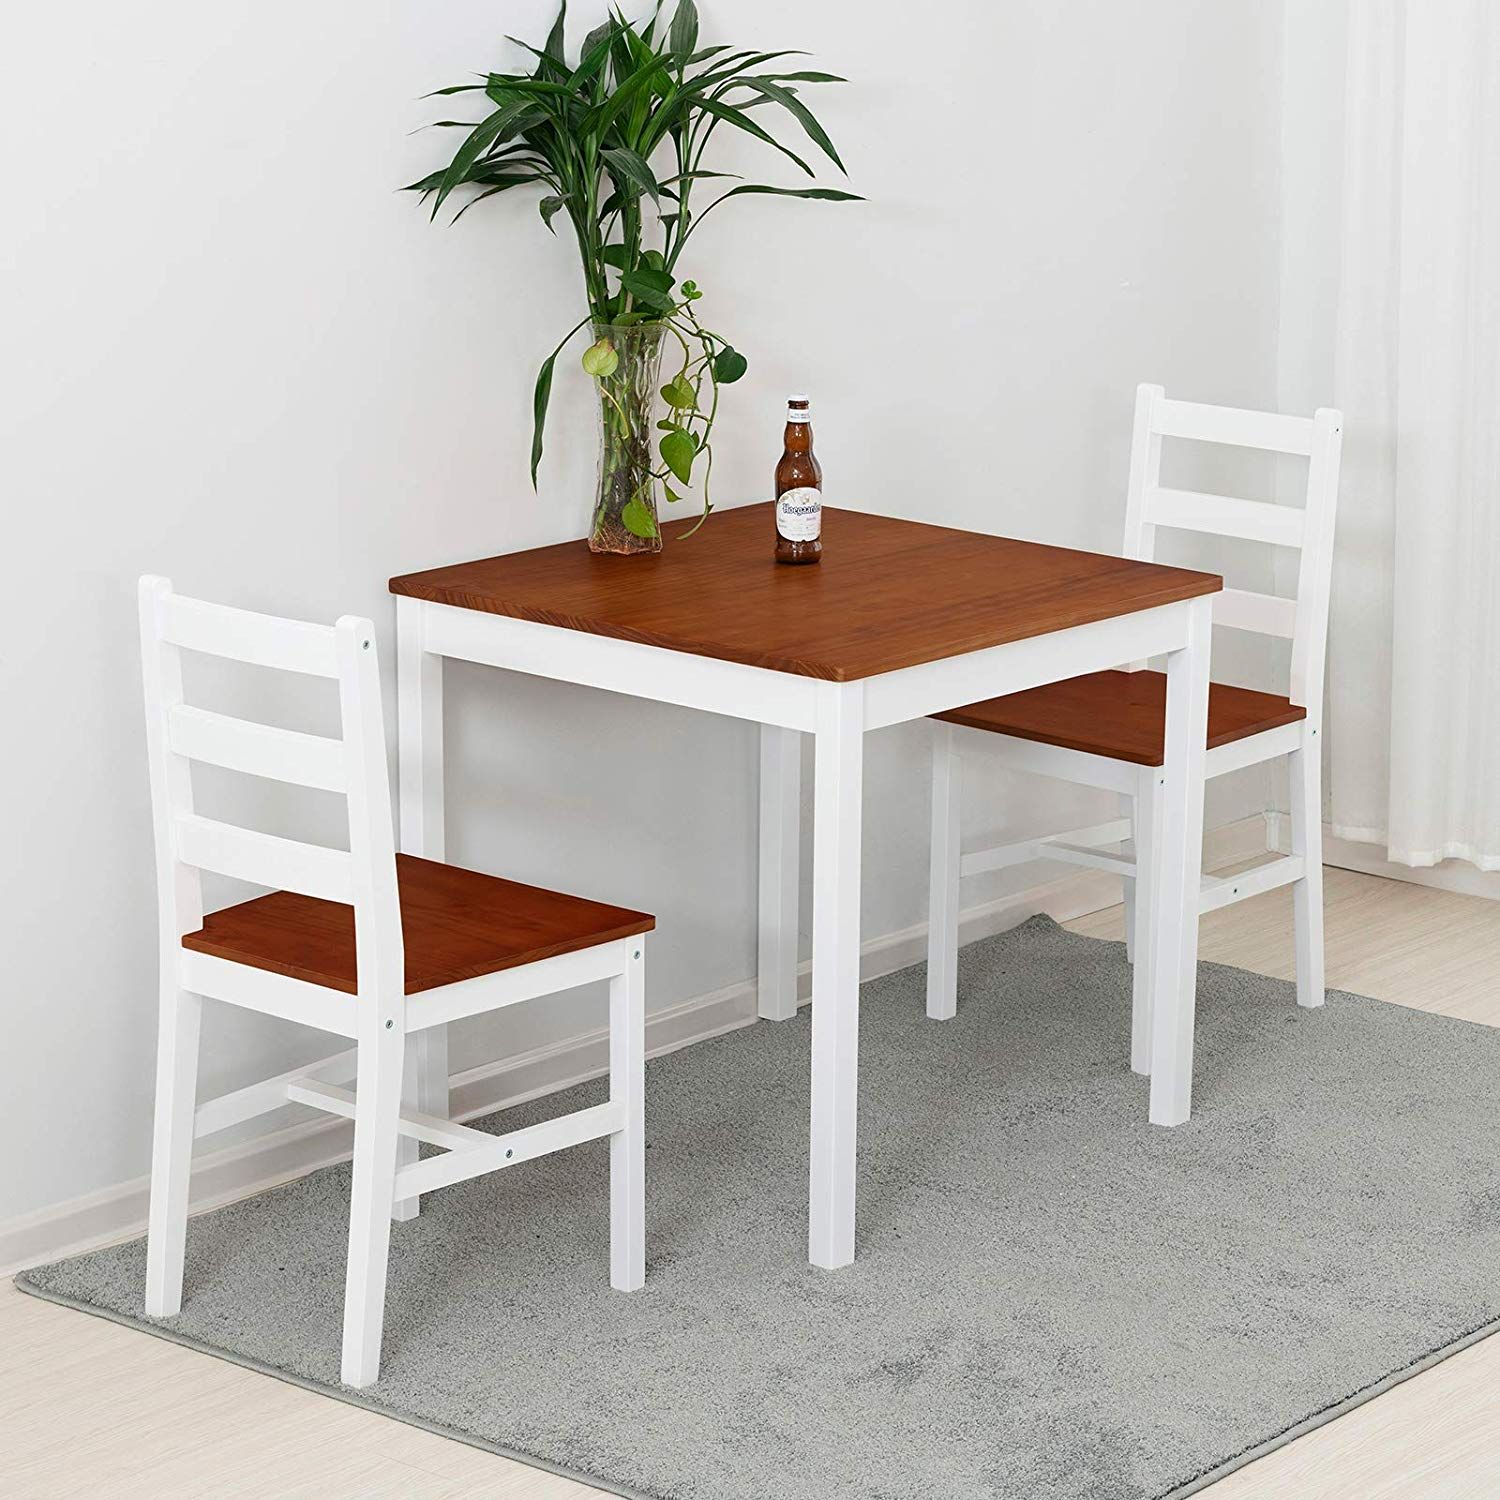 Wood Kitchen Table Set With 2 Chairs Kitchen Table Set Space Saving Wood Kitchen Table Set Kitchen Table Settings Kitchen Table Wood 3 piece dining set under 100